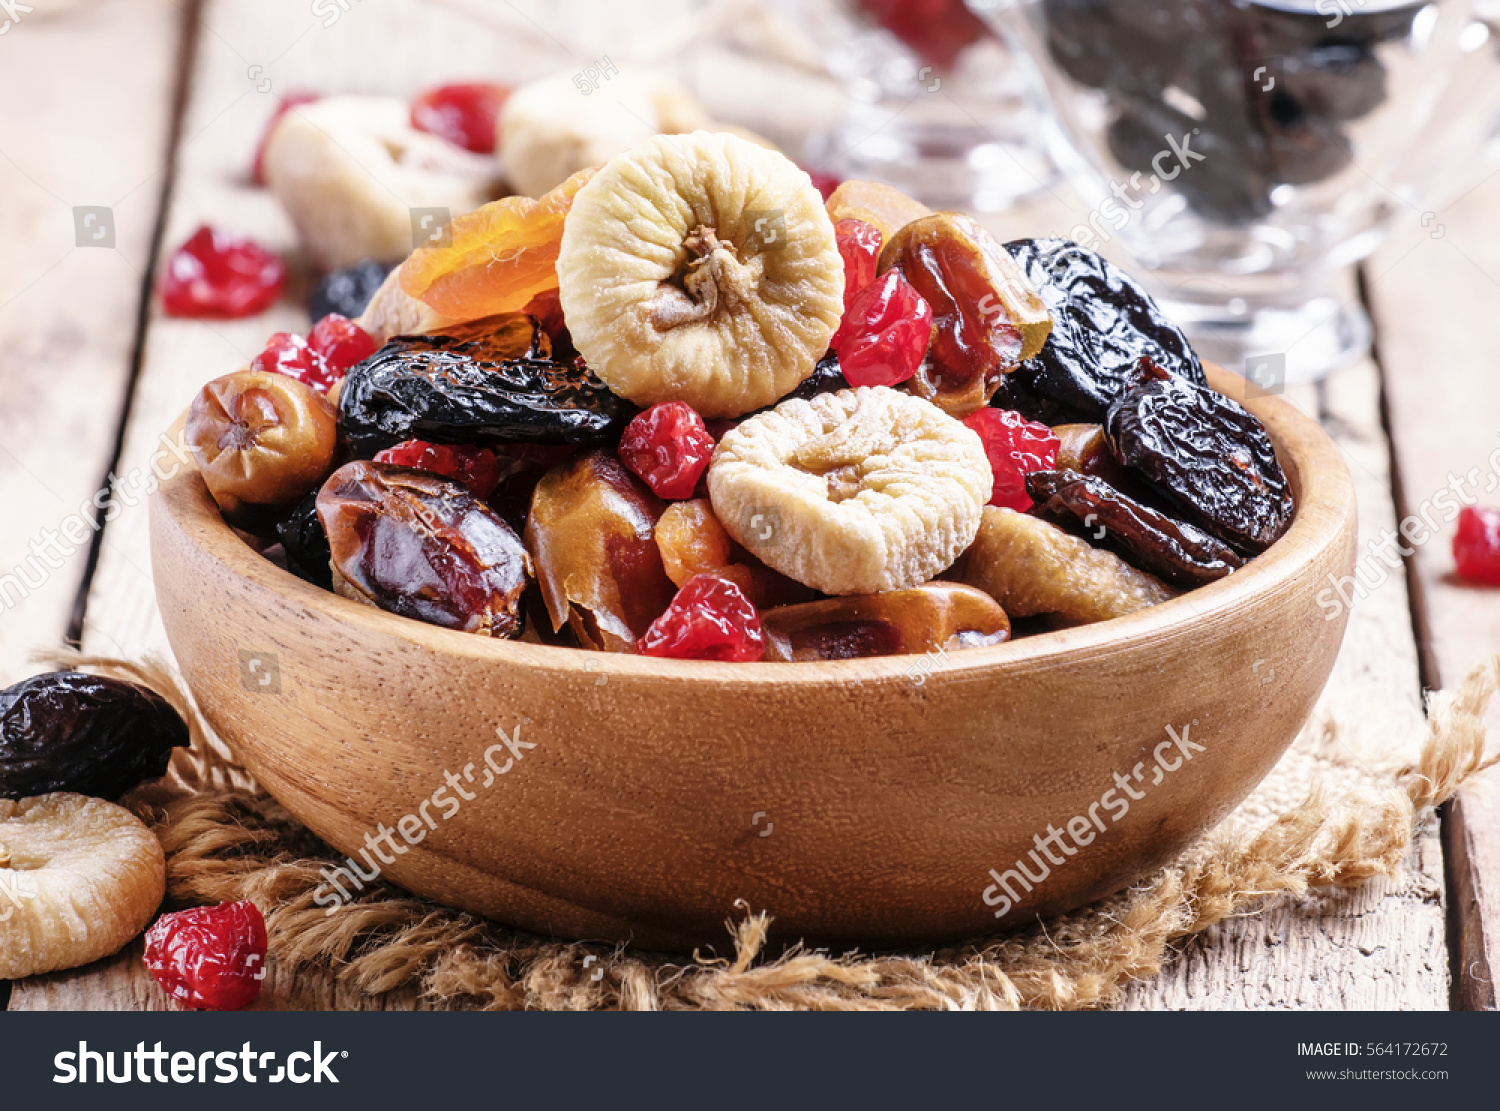 Healthy food: mix from dried fruits in bowl, old wooden background, selective focus